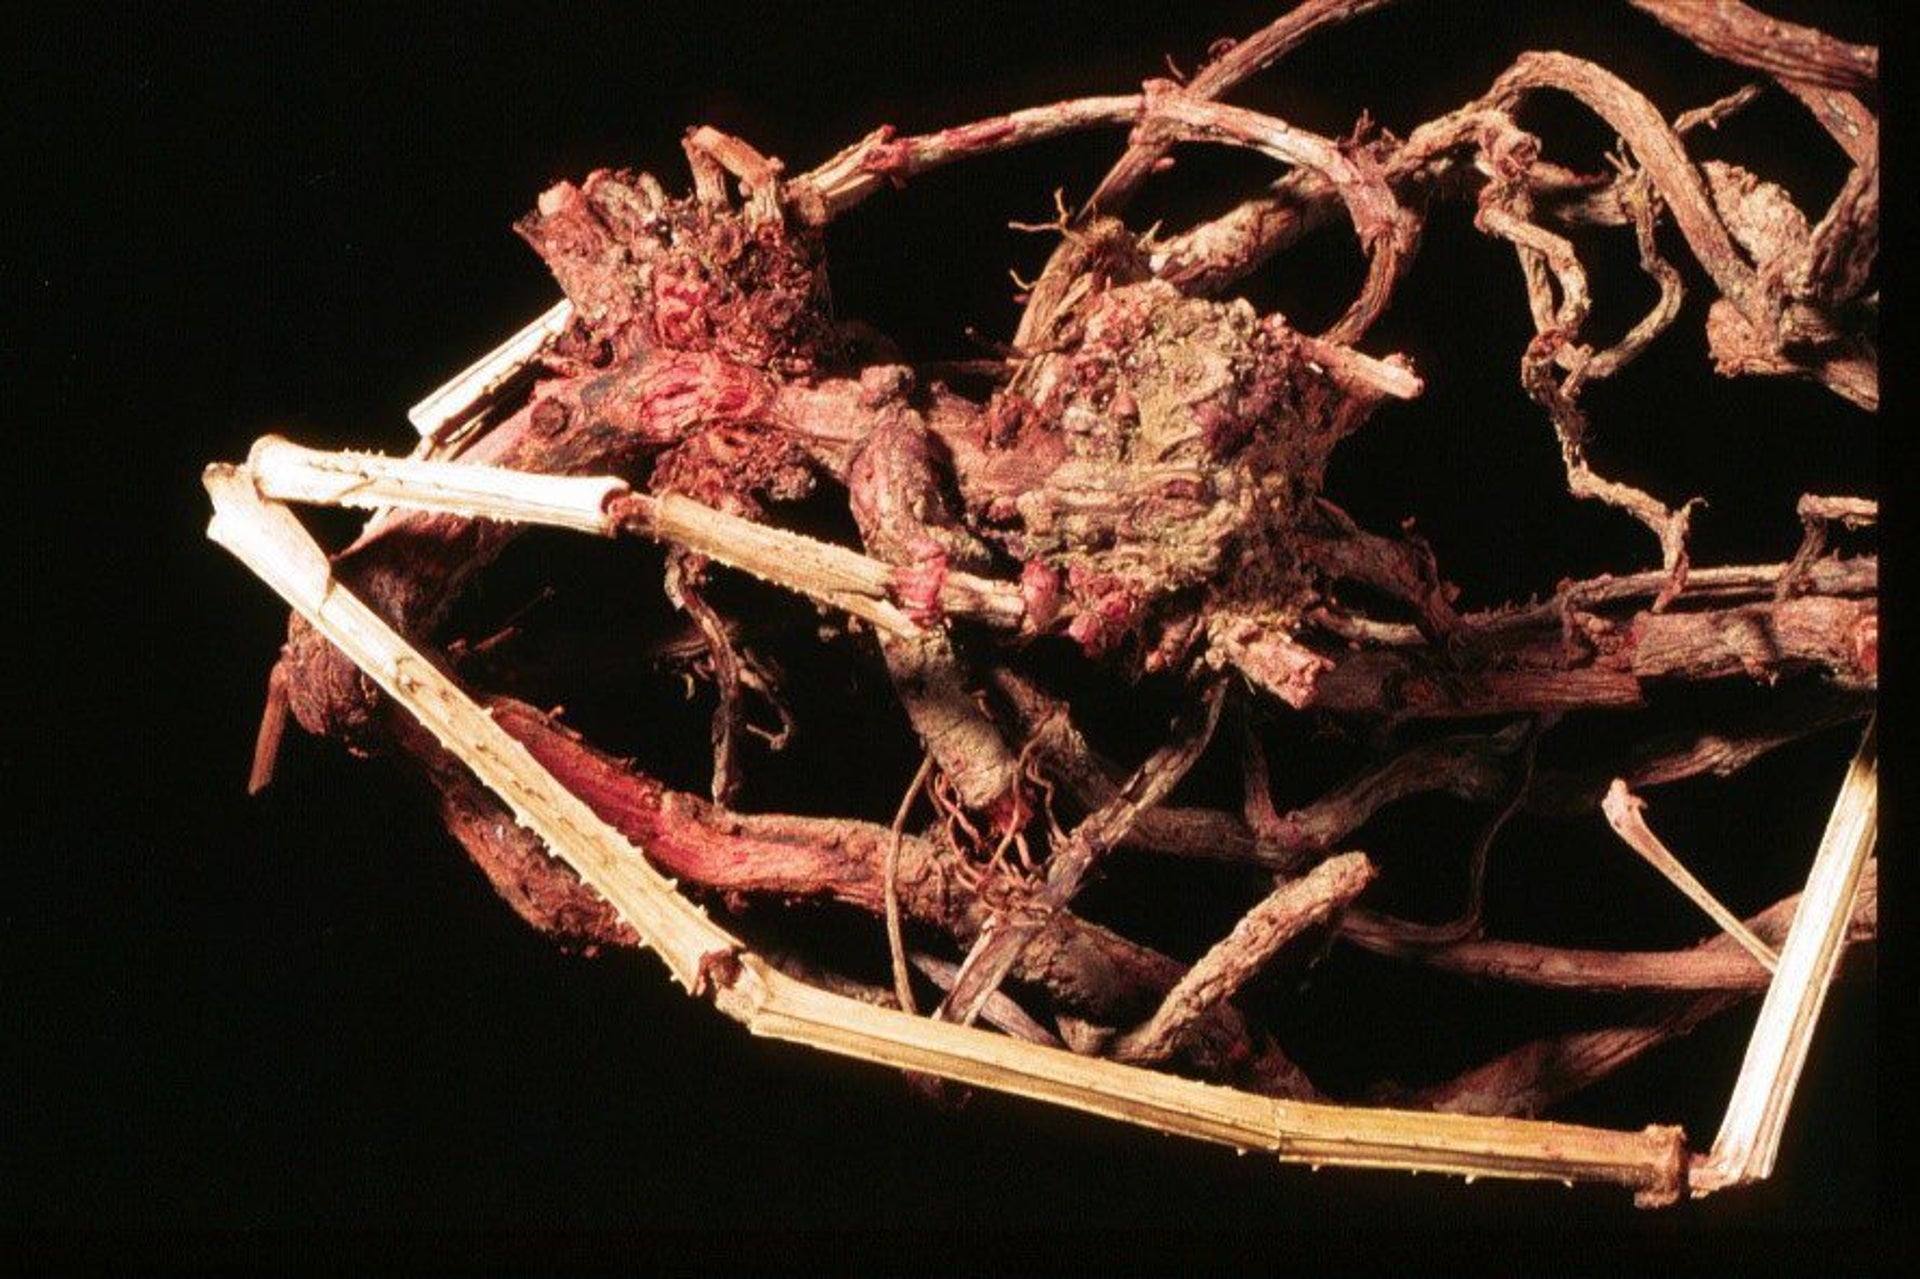 Roots of the dyer's madder used to produce the red pigment.